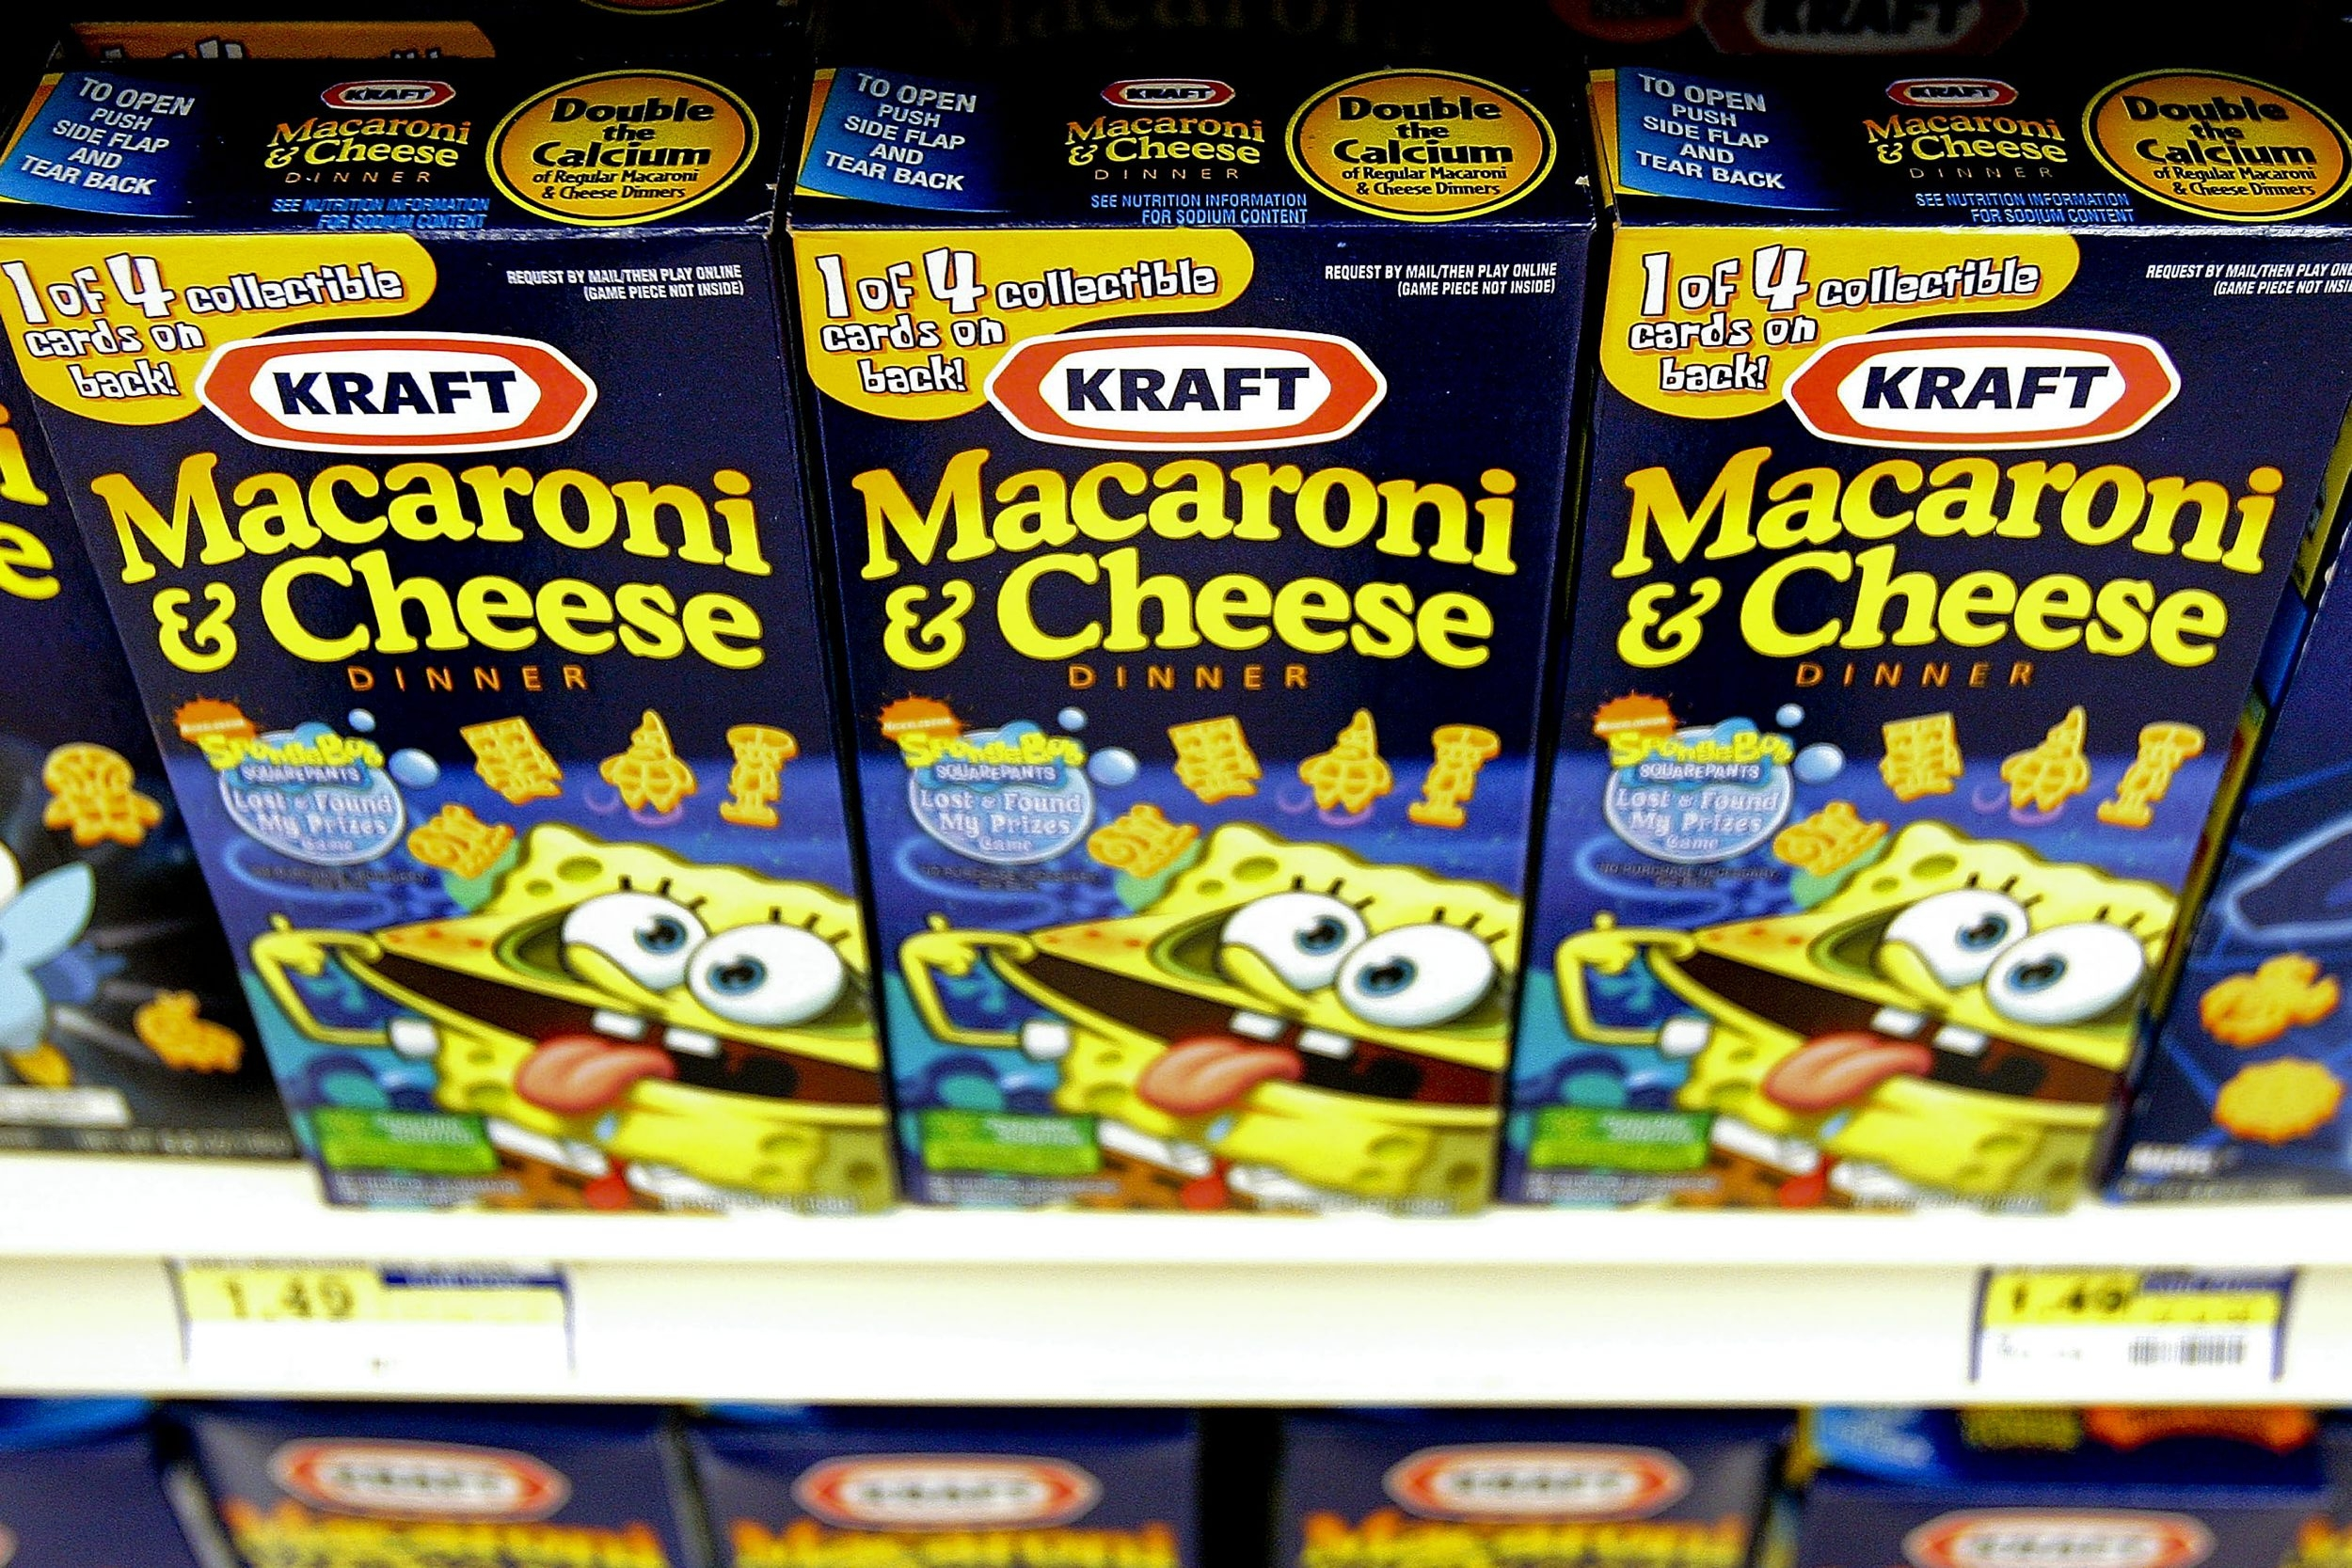 Kraft's new recipes, starting early next year, will be for its macaroni and cheese varieties that come in the SpongeBob Squarepants, Halloween and winter shapes.